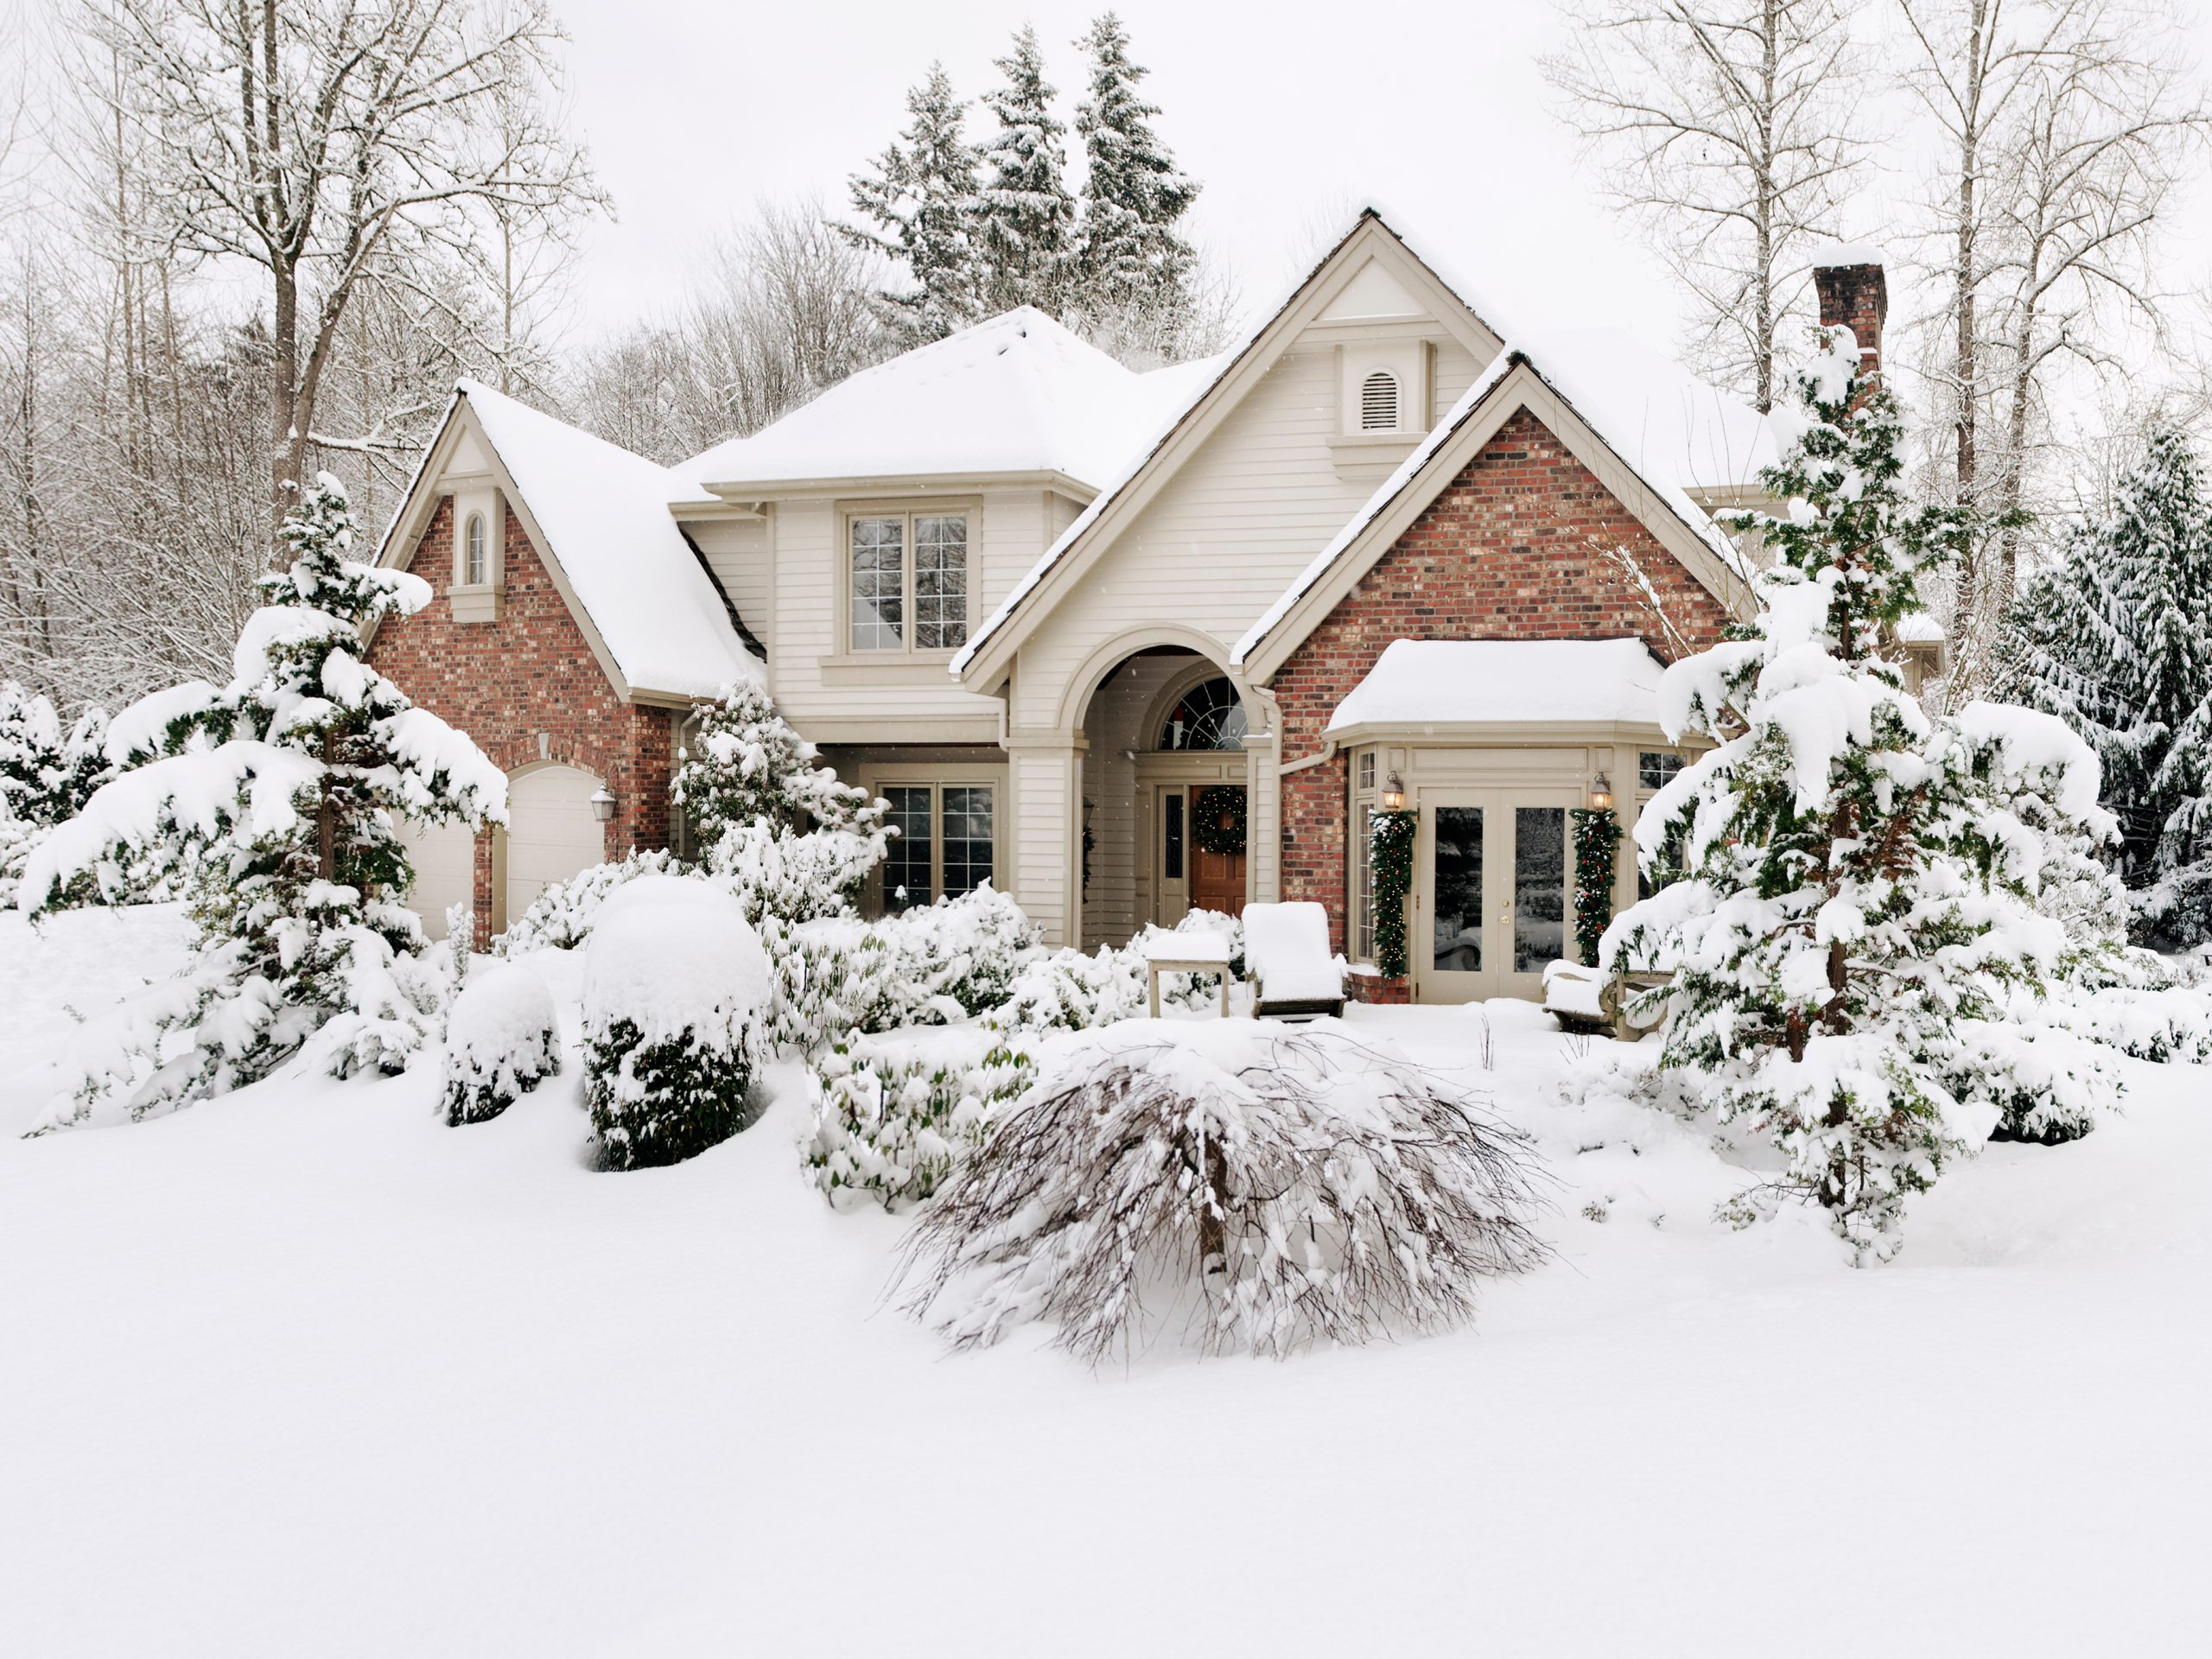 snowy house in the winter time.